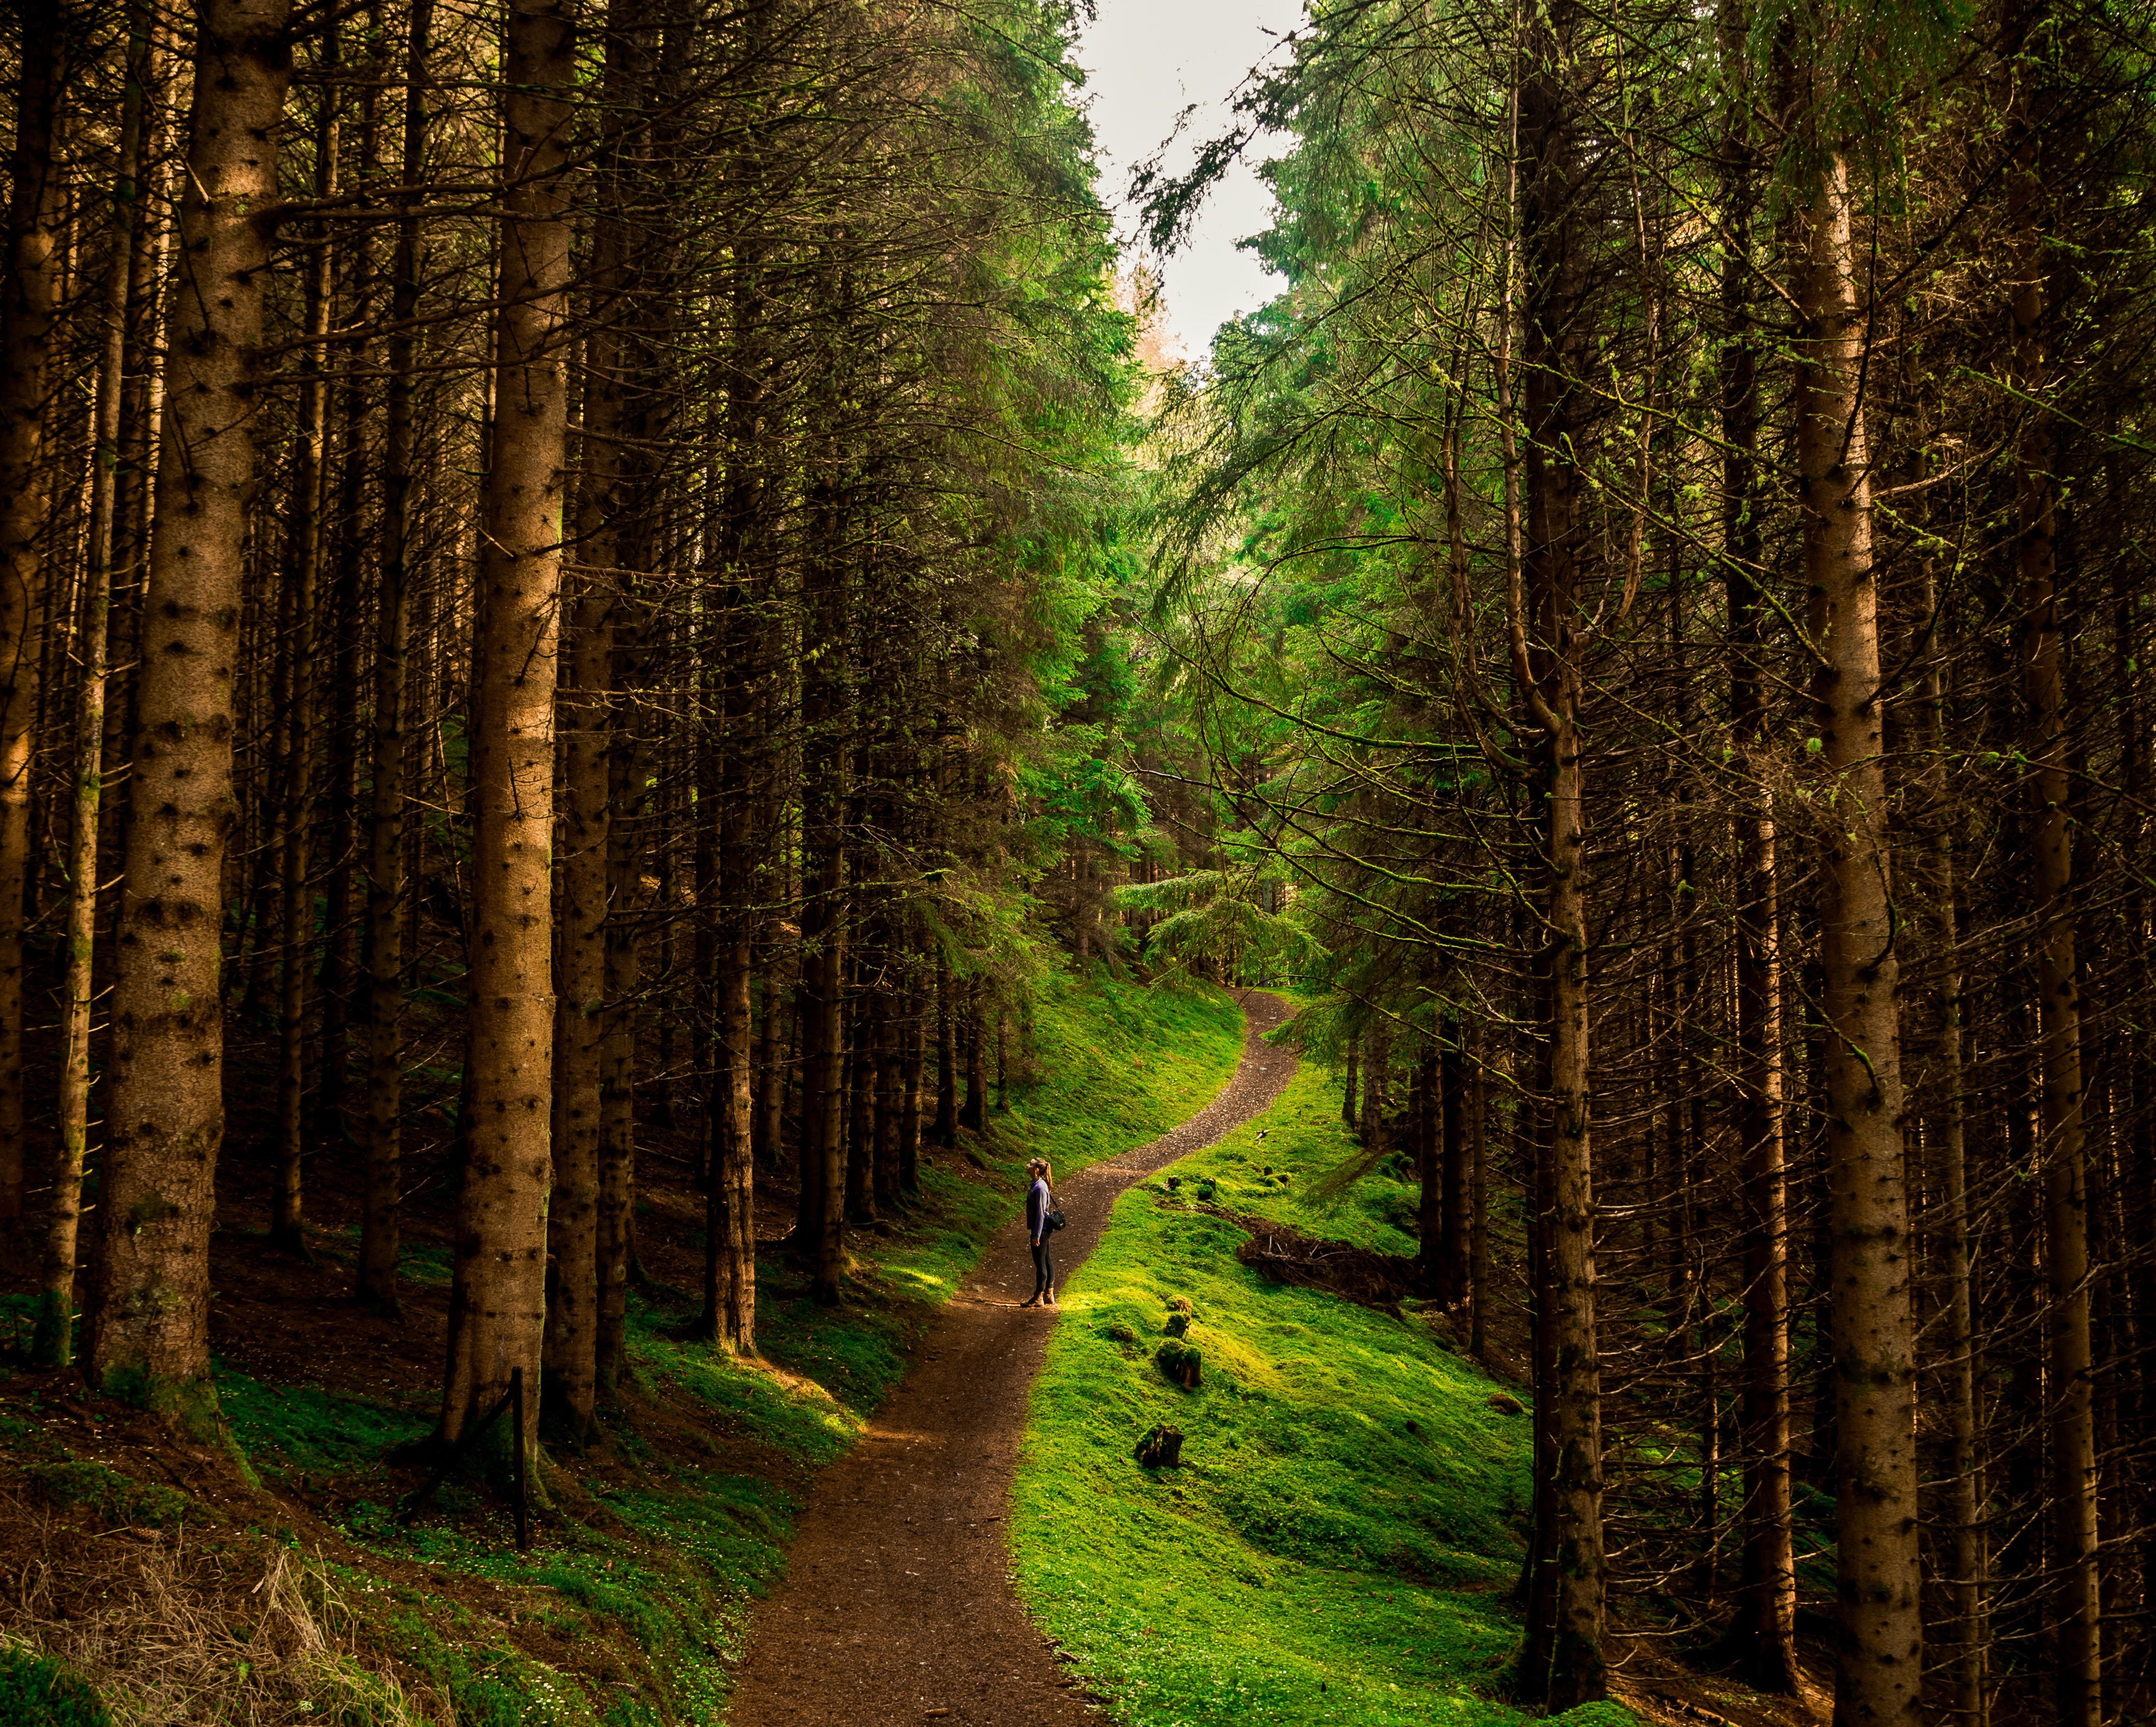 person standing on pathway between tall trees